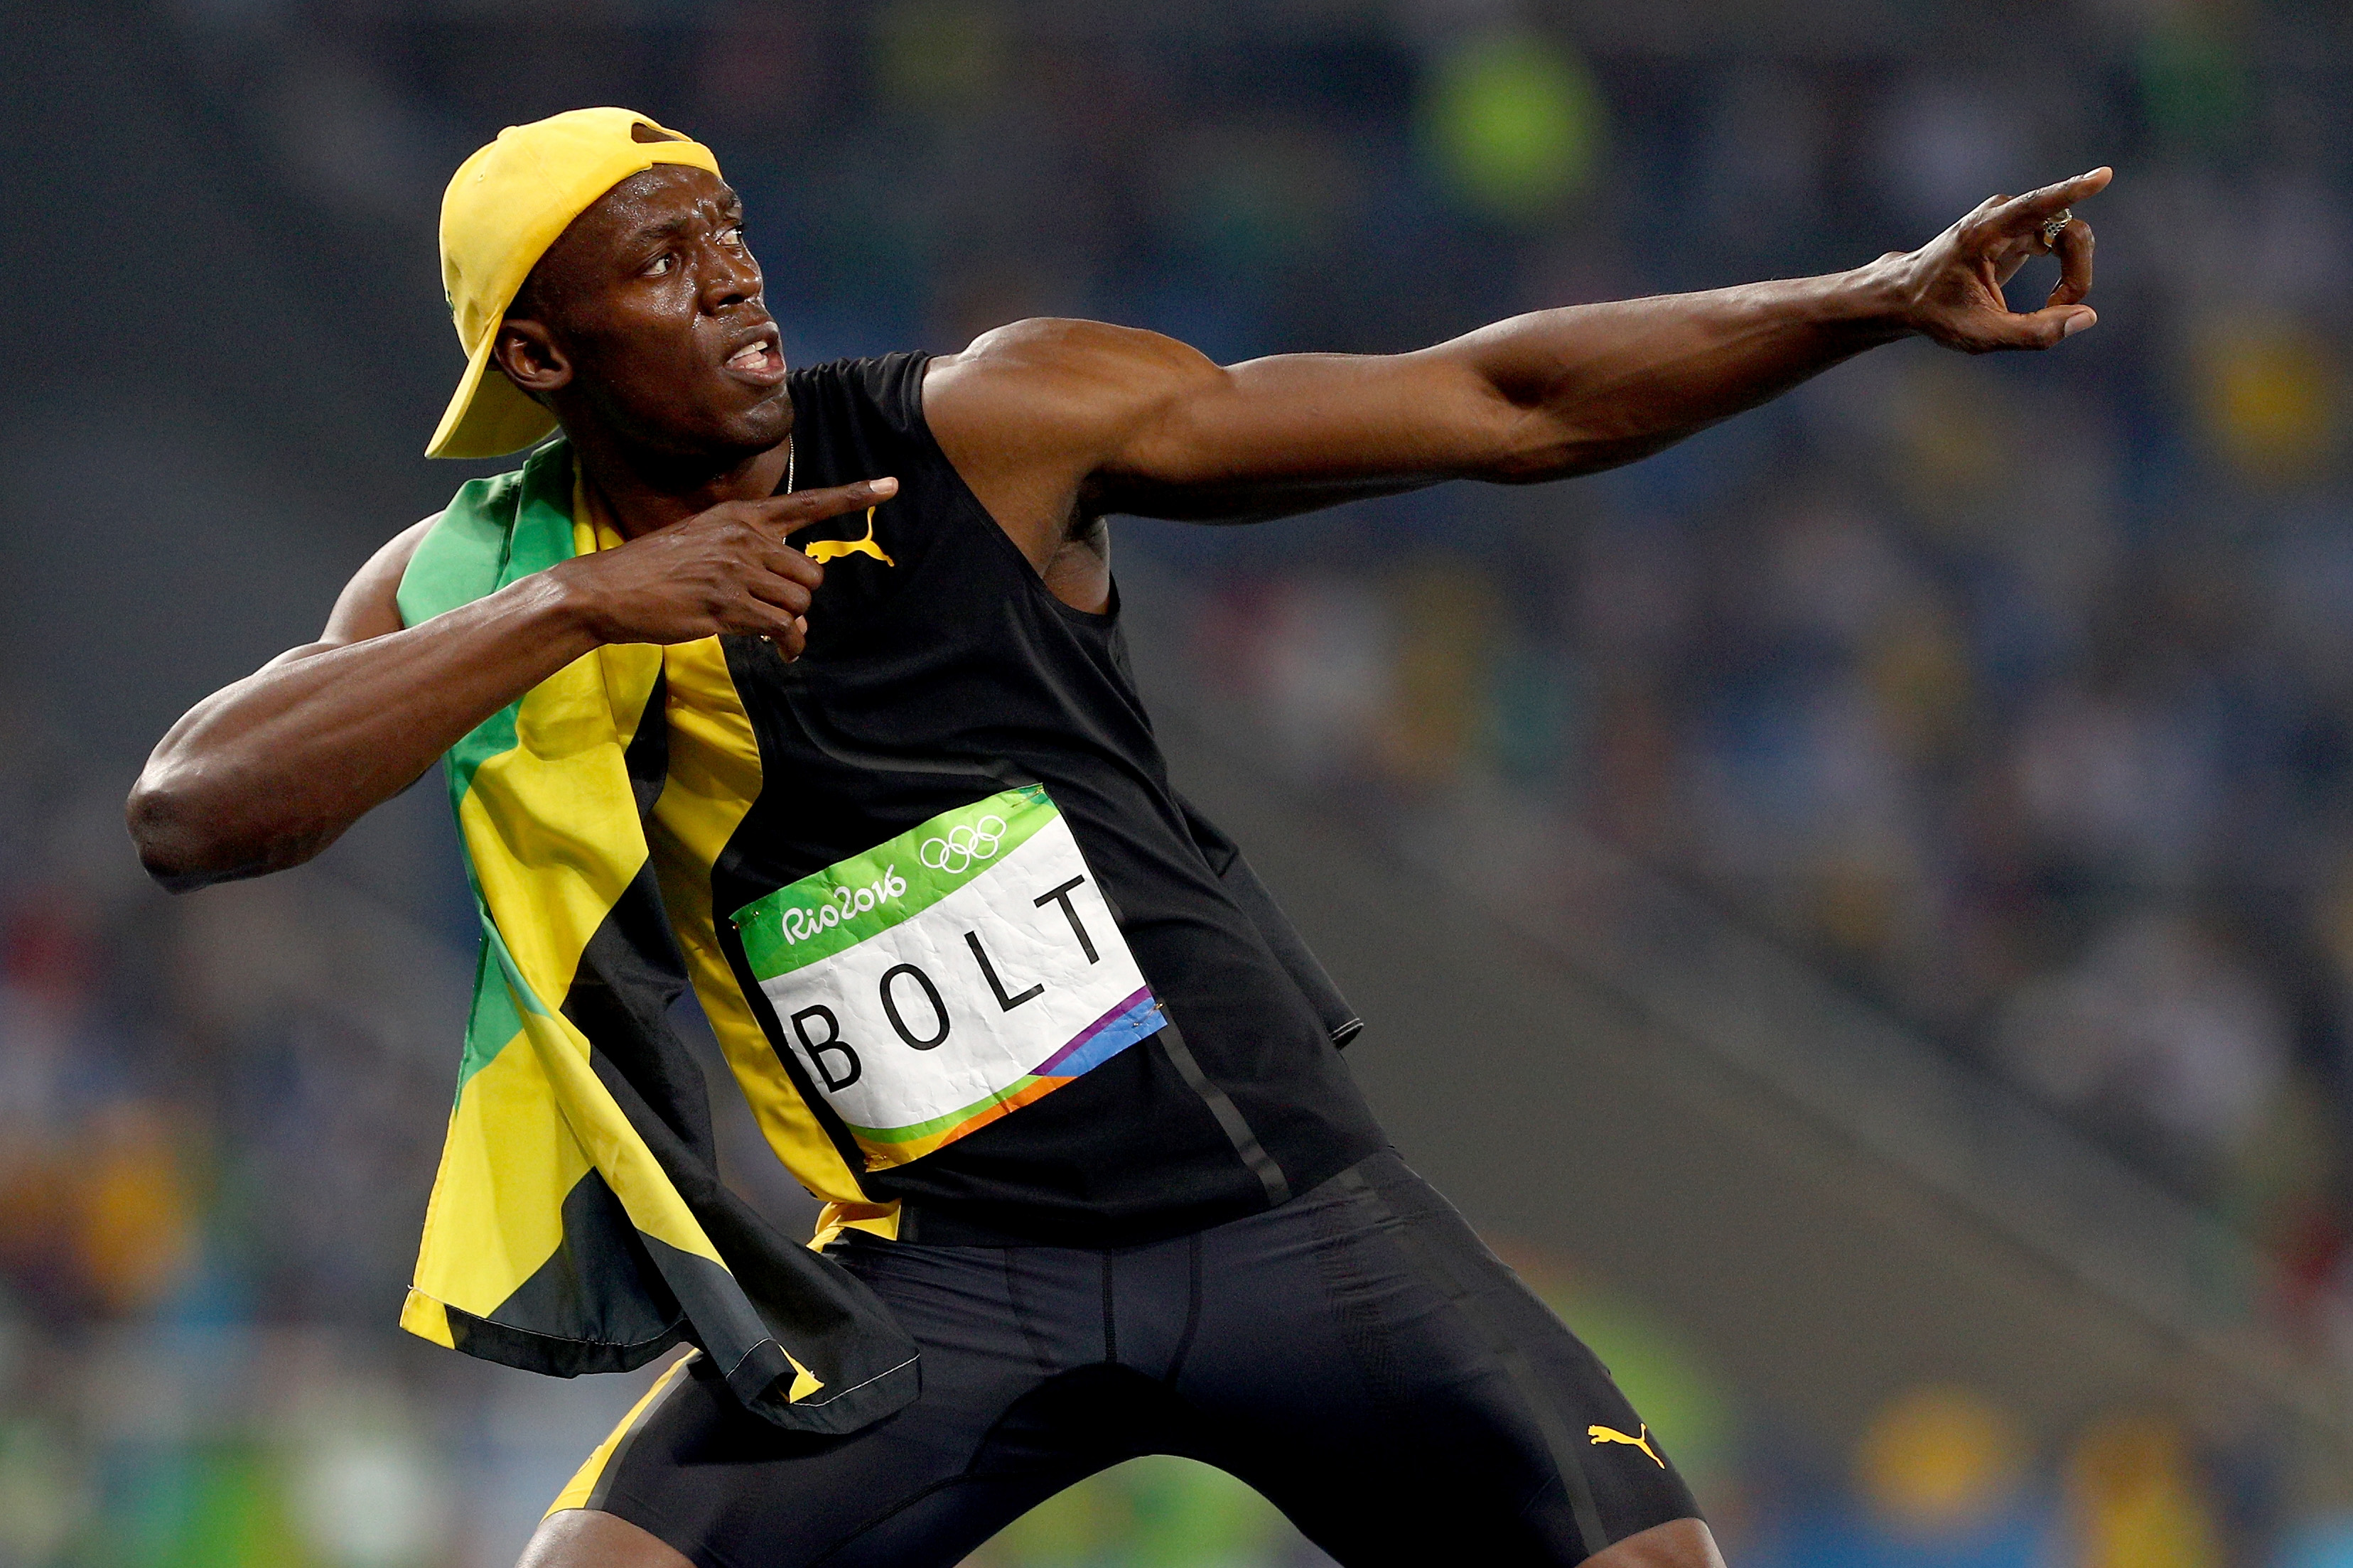 RIO DE JANEIRO, BRAZIL - AUGUST 14: Usain Bolt of Jamaica celebrates winning the Men's 100m Final on Day 9 of the Rio 2016 Olympic Games at the Olympic Stadium on August 14, 2016 in Rio de Janeiro, Brazil. (Photo by Ian Walton/Getty Images)